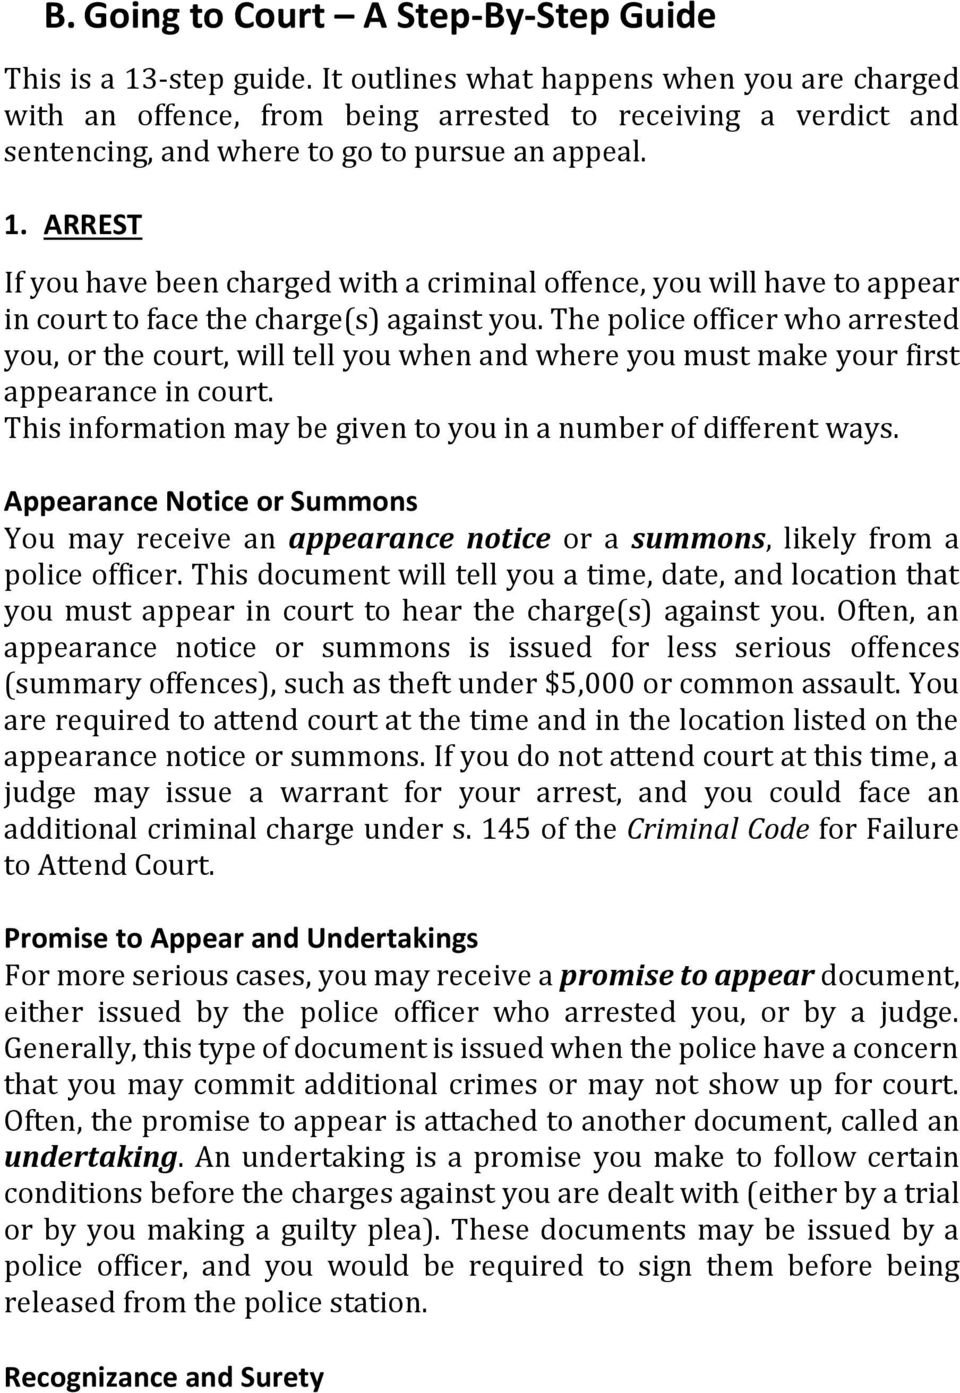 ARREST If you have been charged with a criminal offence, you will have to appear in court to face the charge(s) against you.